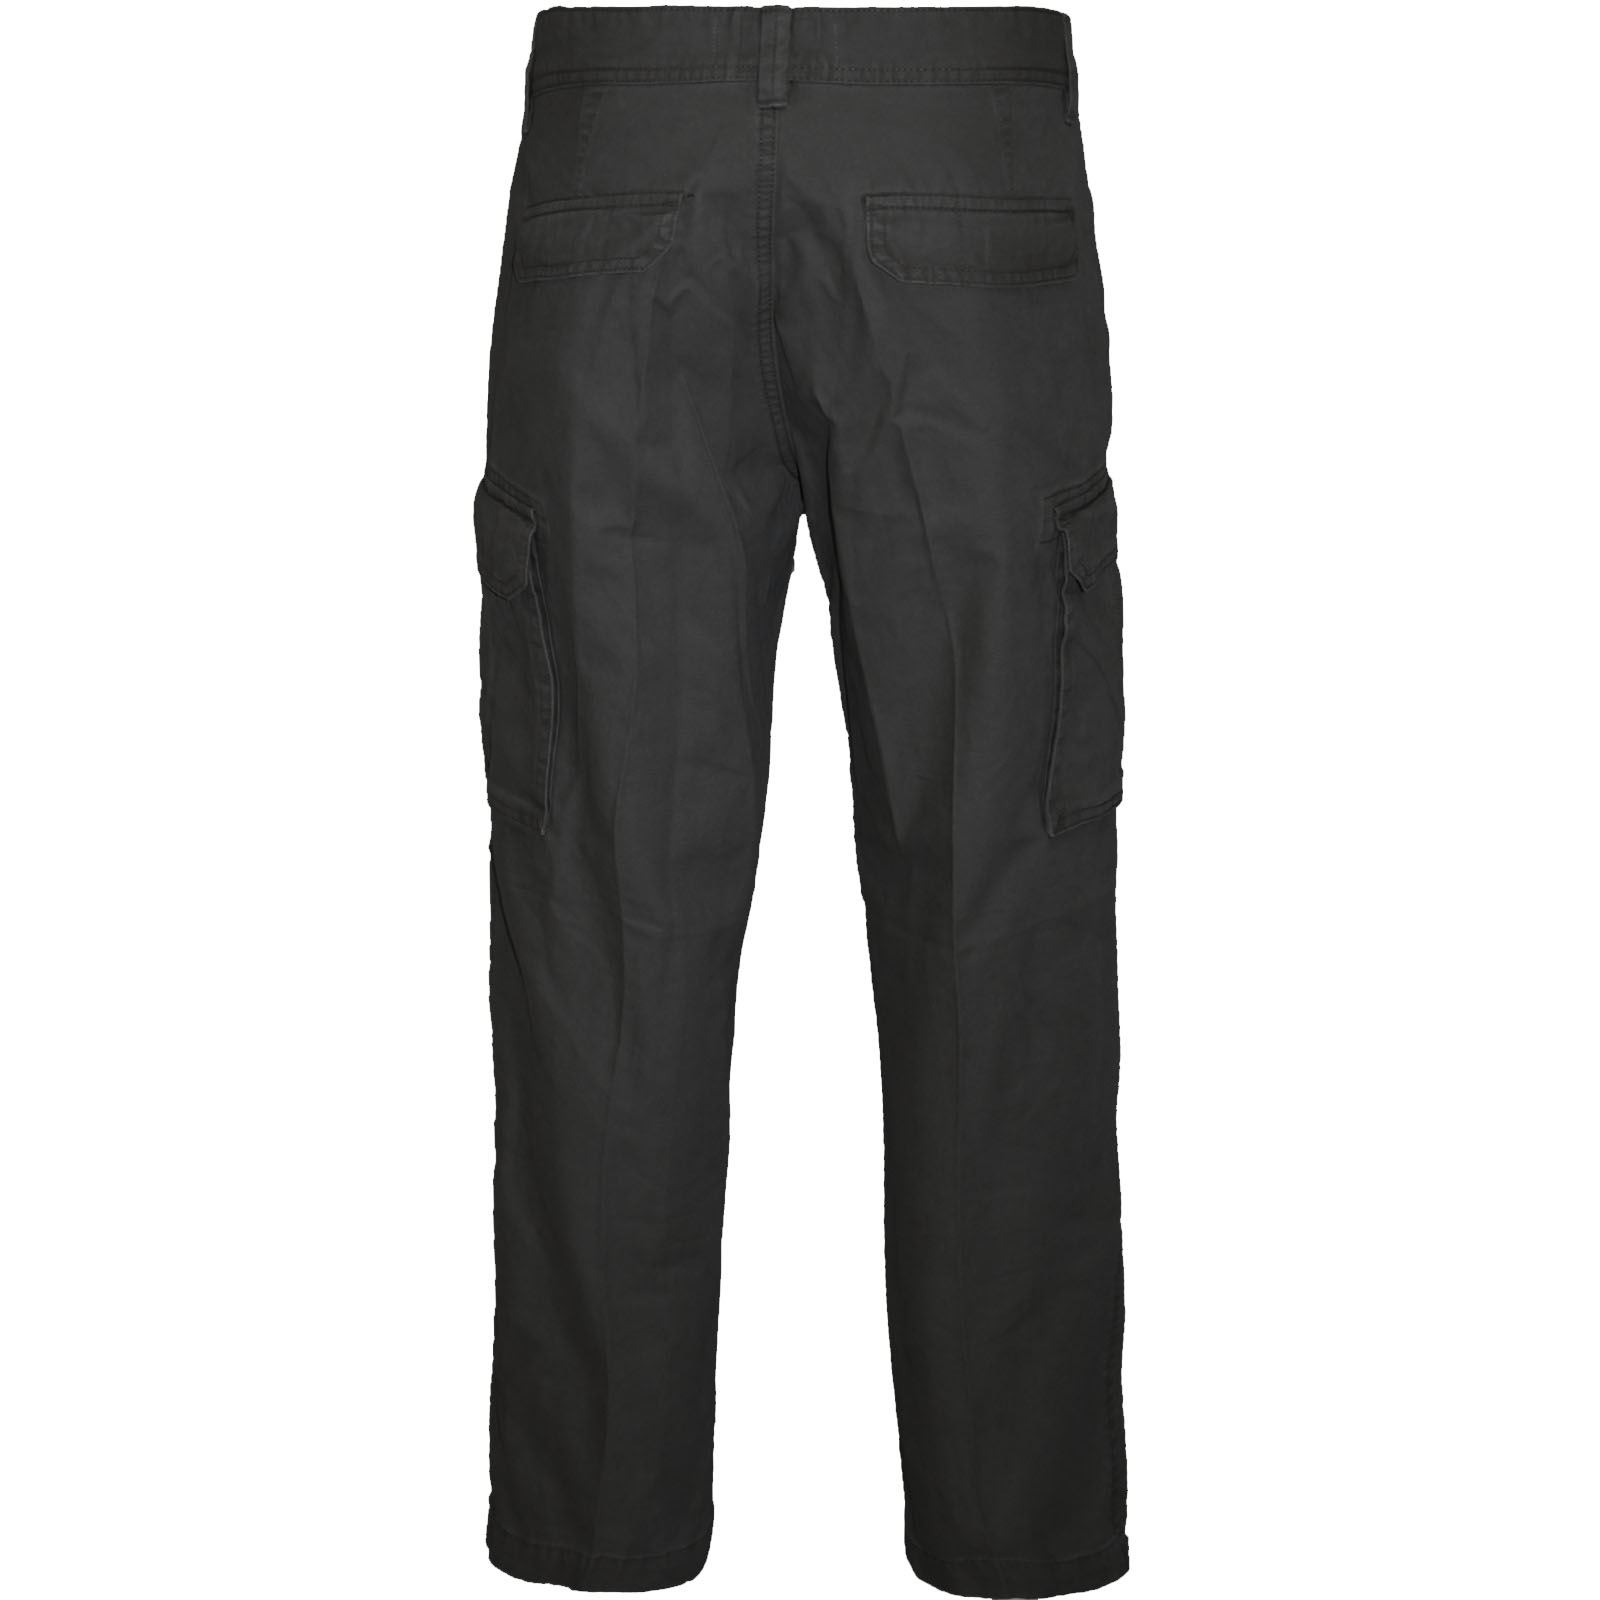 Pants with pockets on the sides of men: a review of models 87